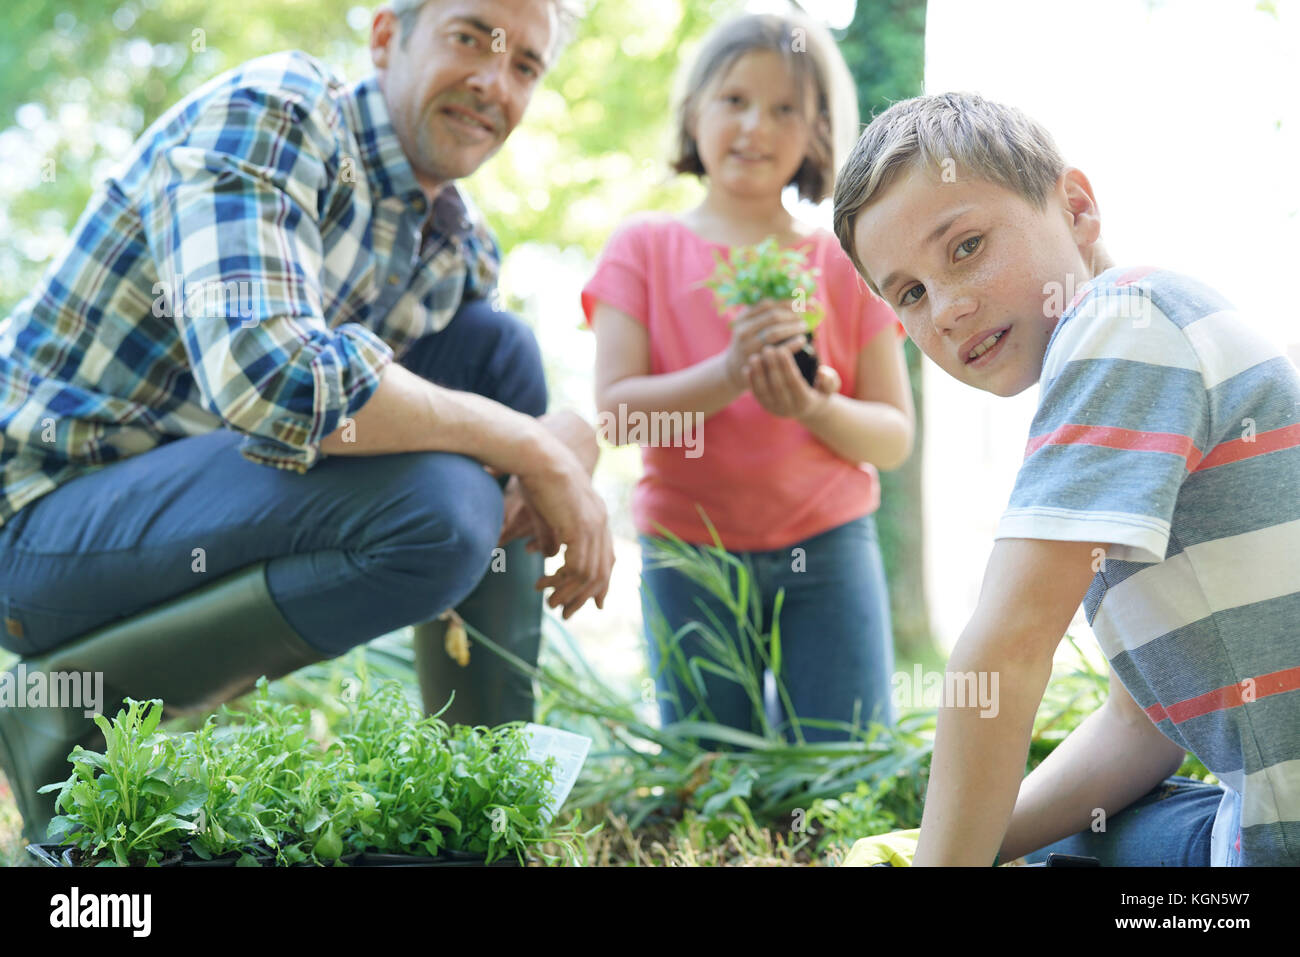 Kids helping daddy with gardening - Stock Image